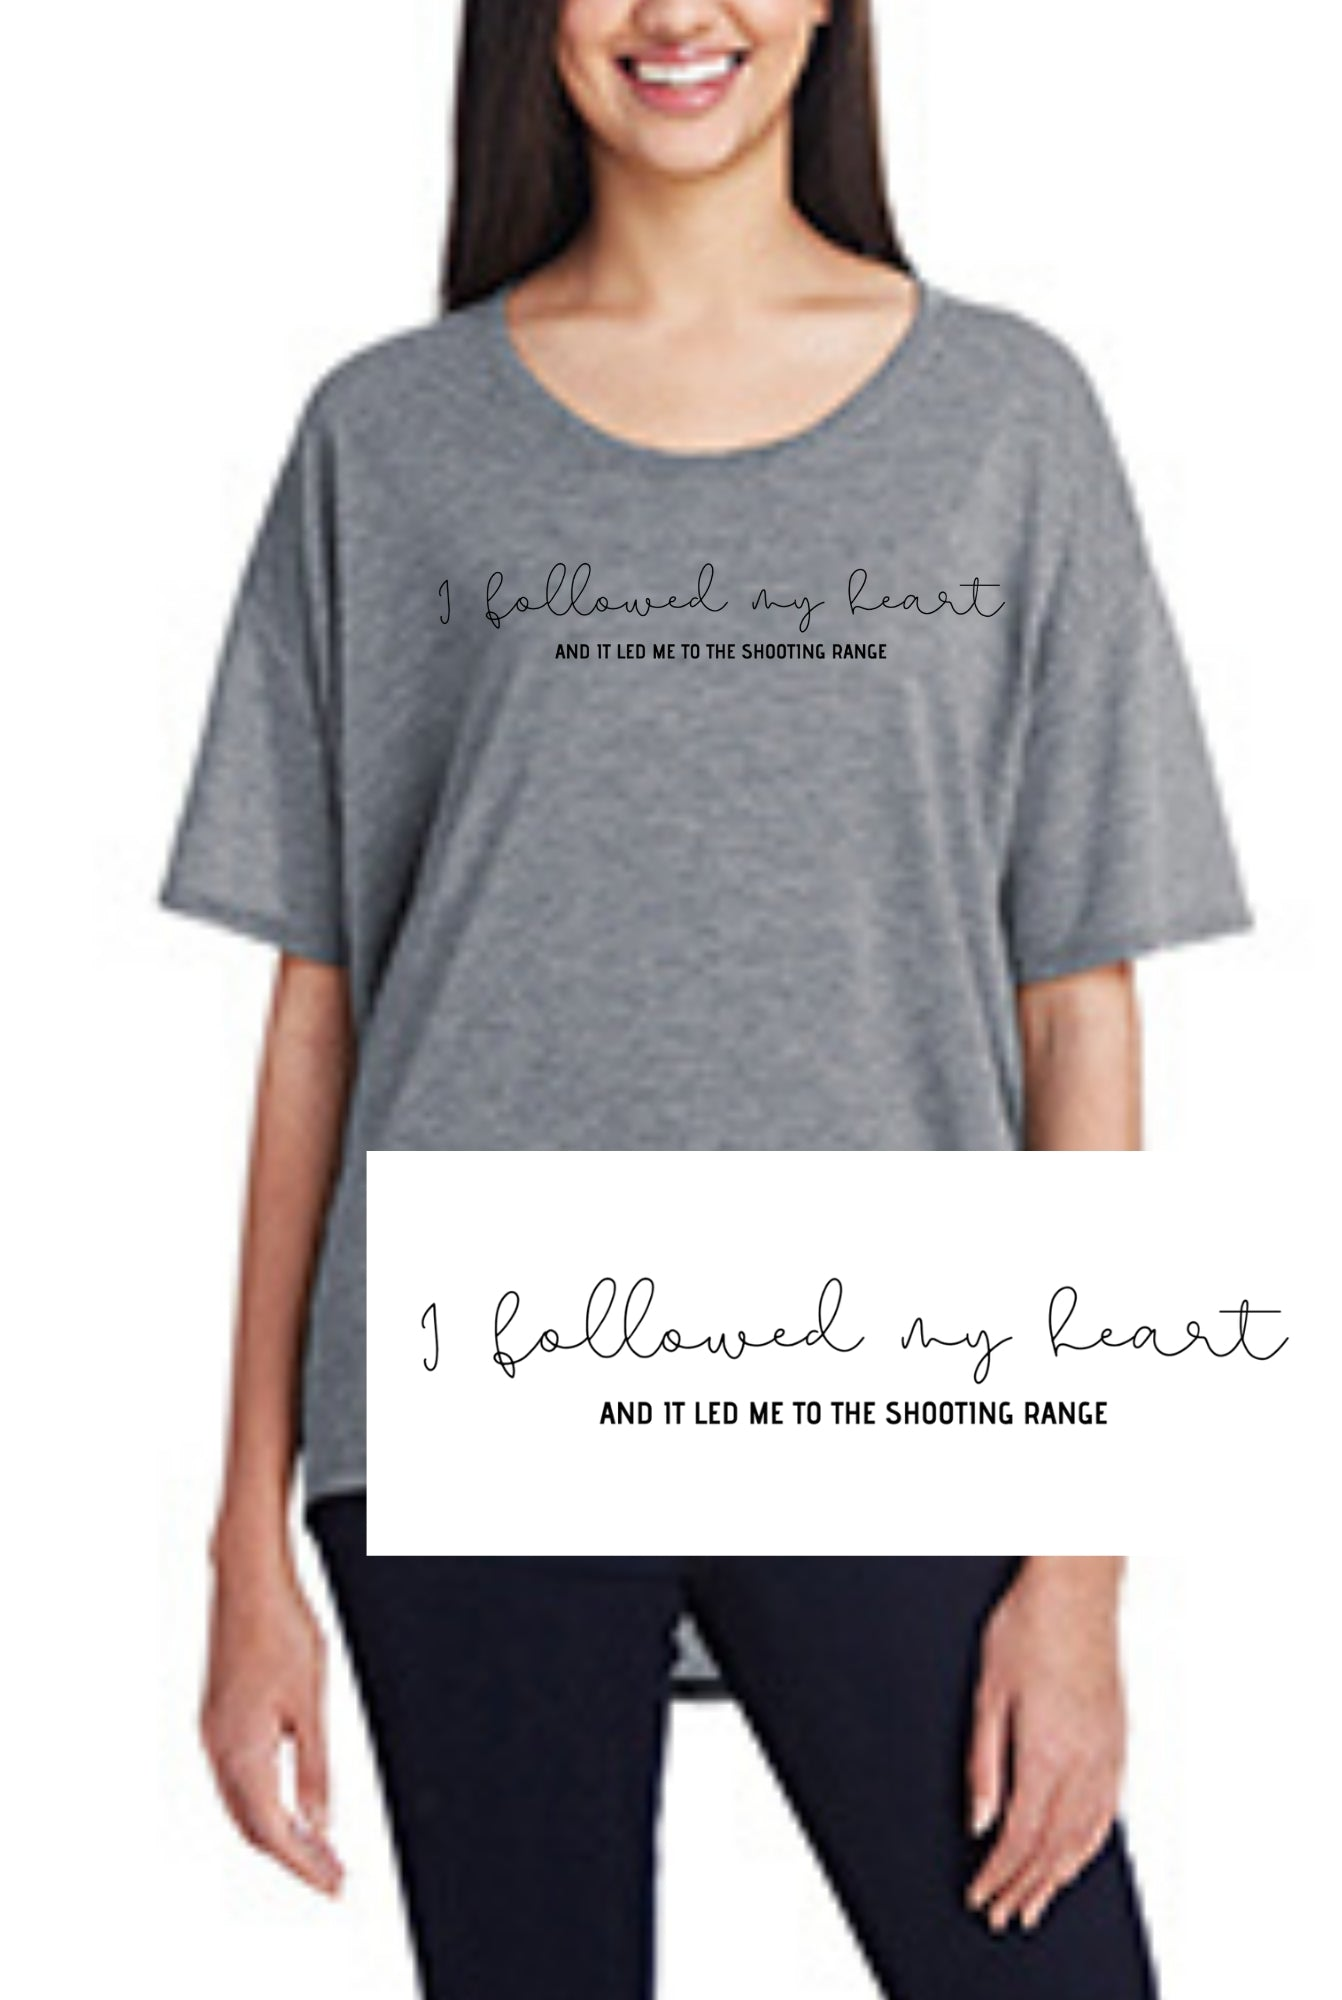 I Followed My Heart and it led me to the shooting range, Women's Hi-Lo Freedom Shirt